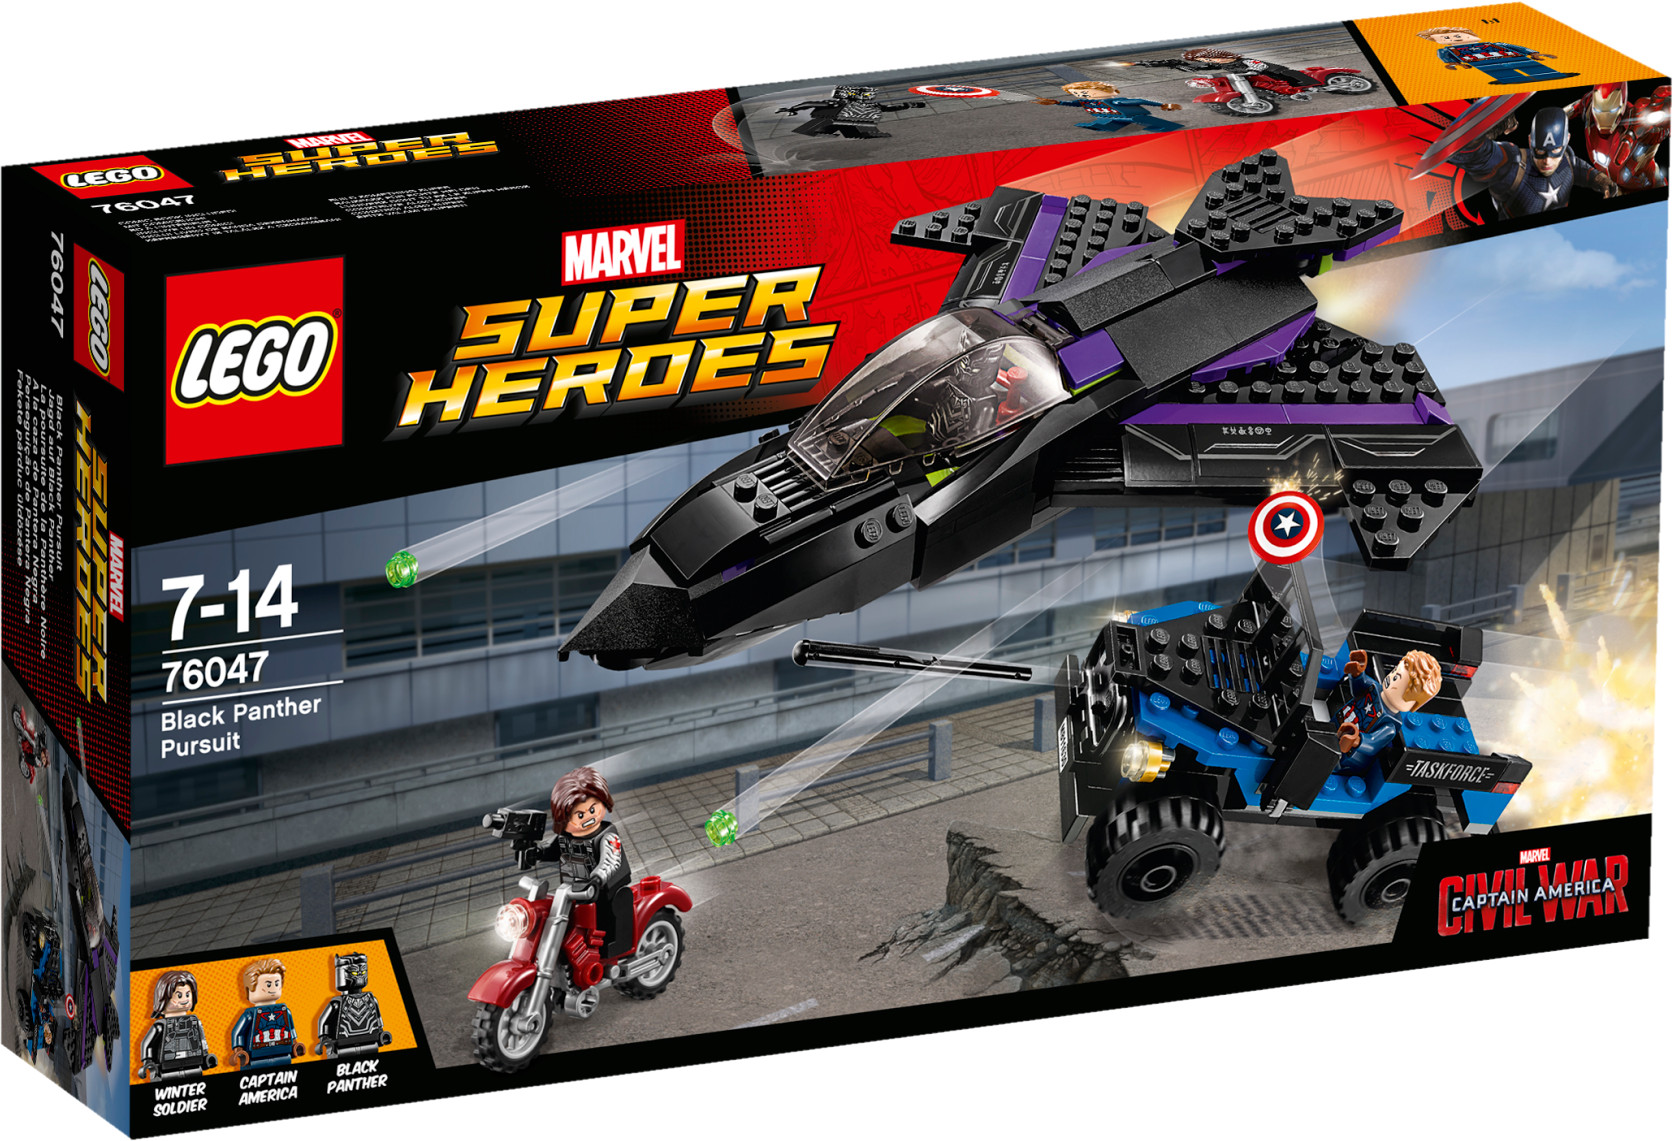 Review: LEGO 76047 Black Panther Pursuit – Jay's Brick Blog